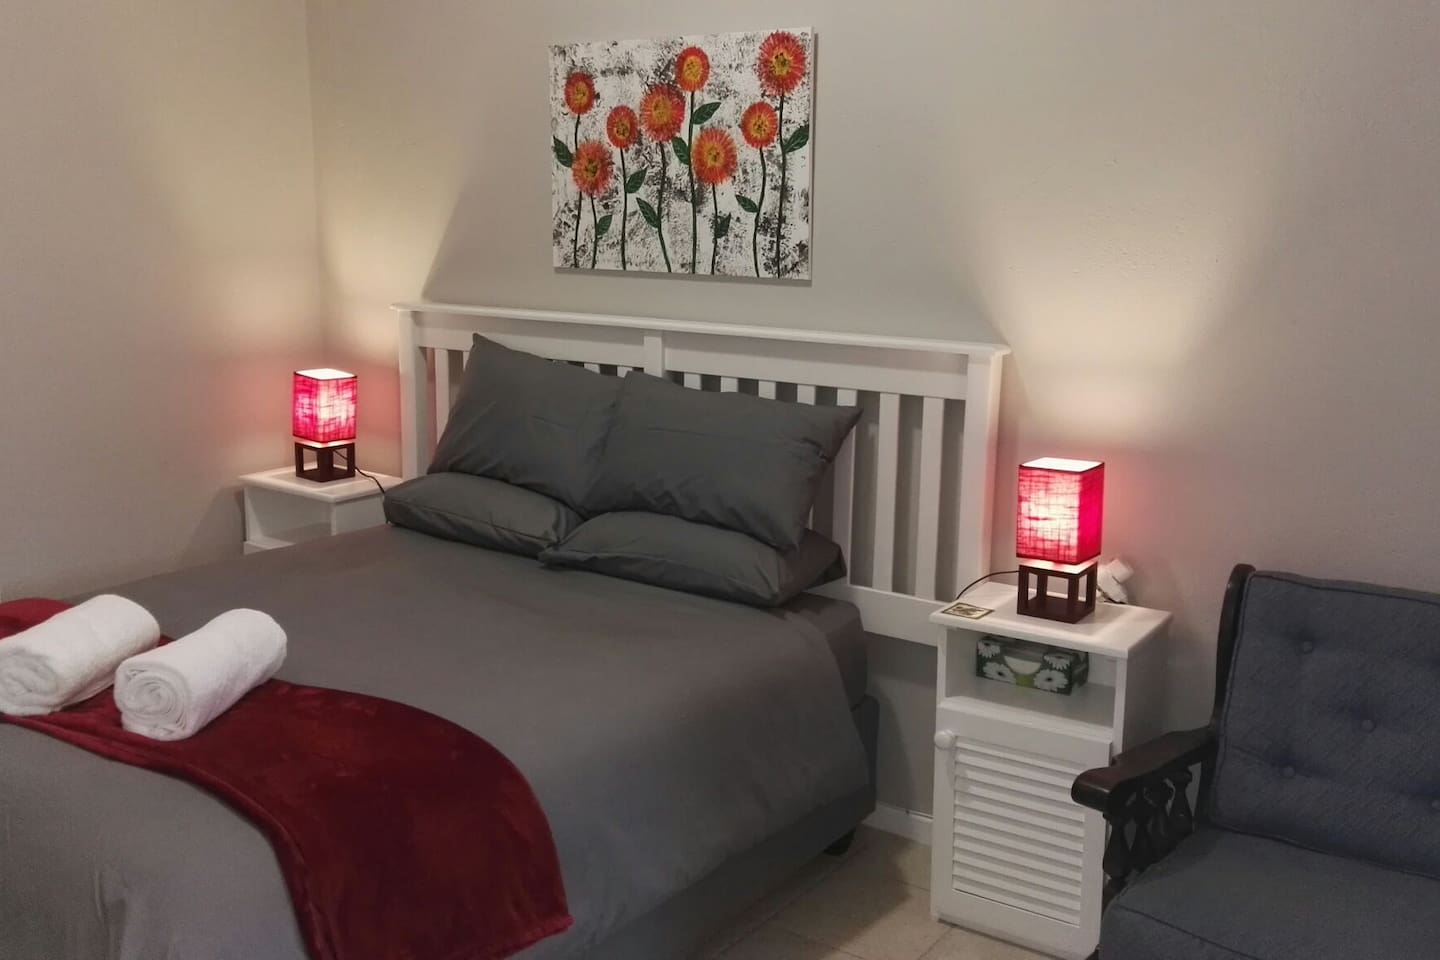 Bedroom, Queen size bed with bedding, Bedside tables with bedside lamps and towels.